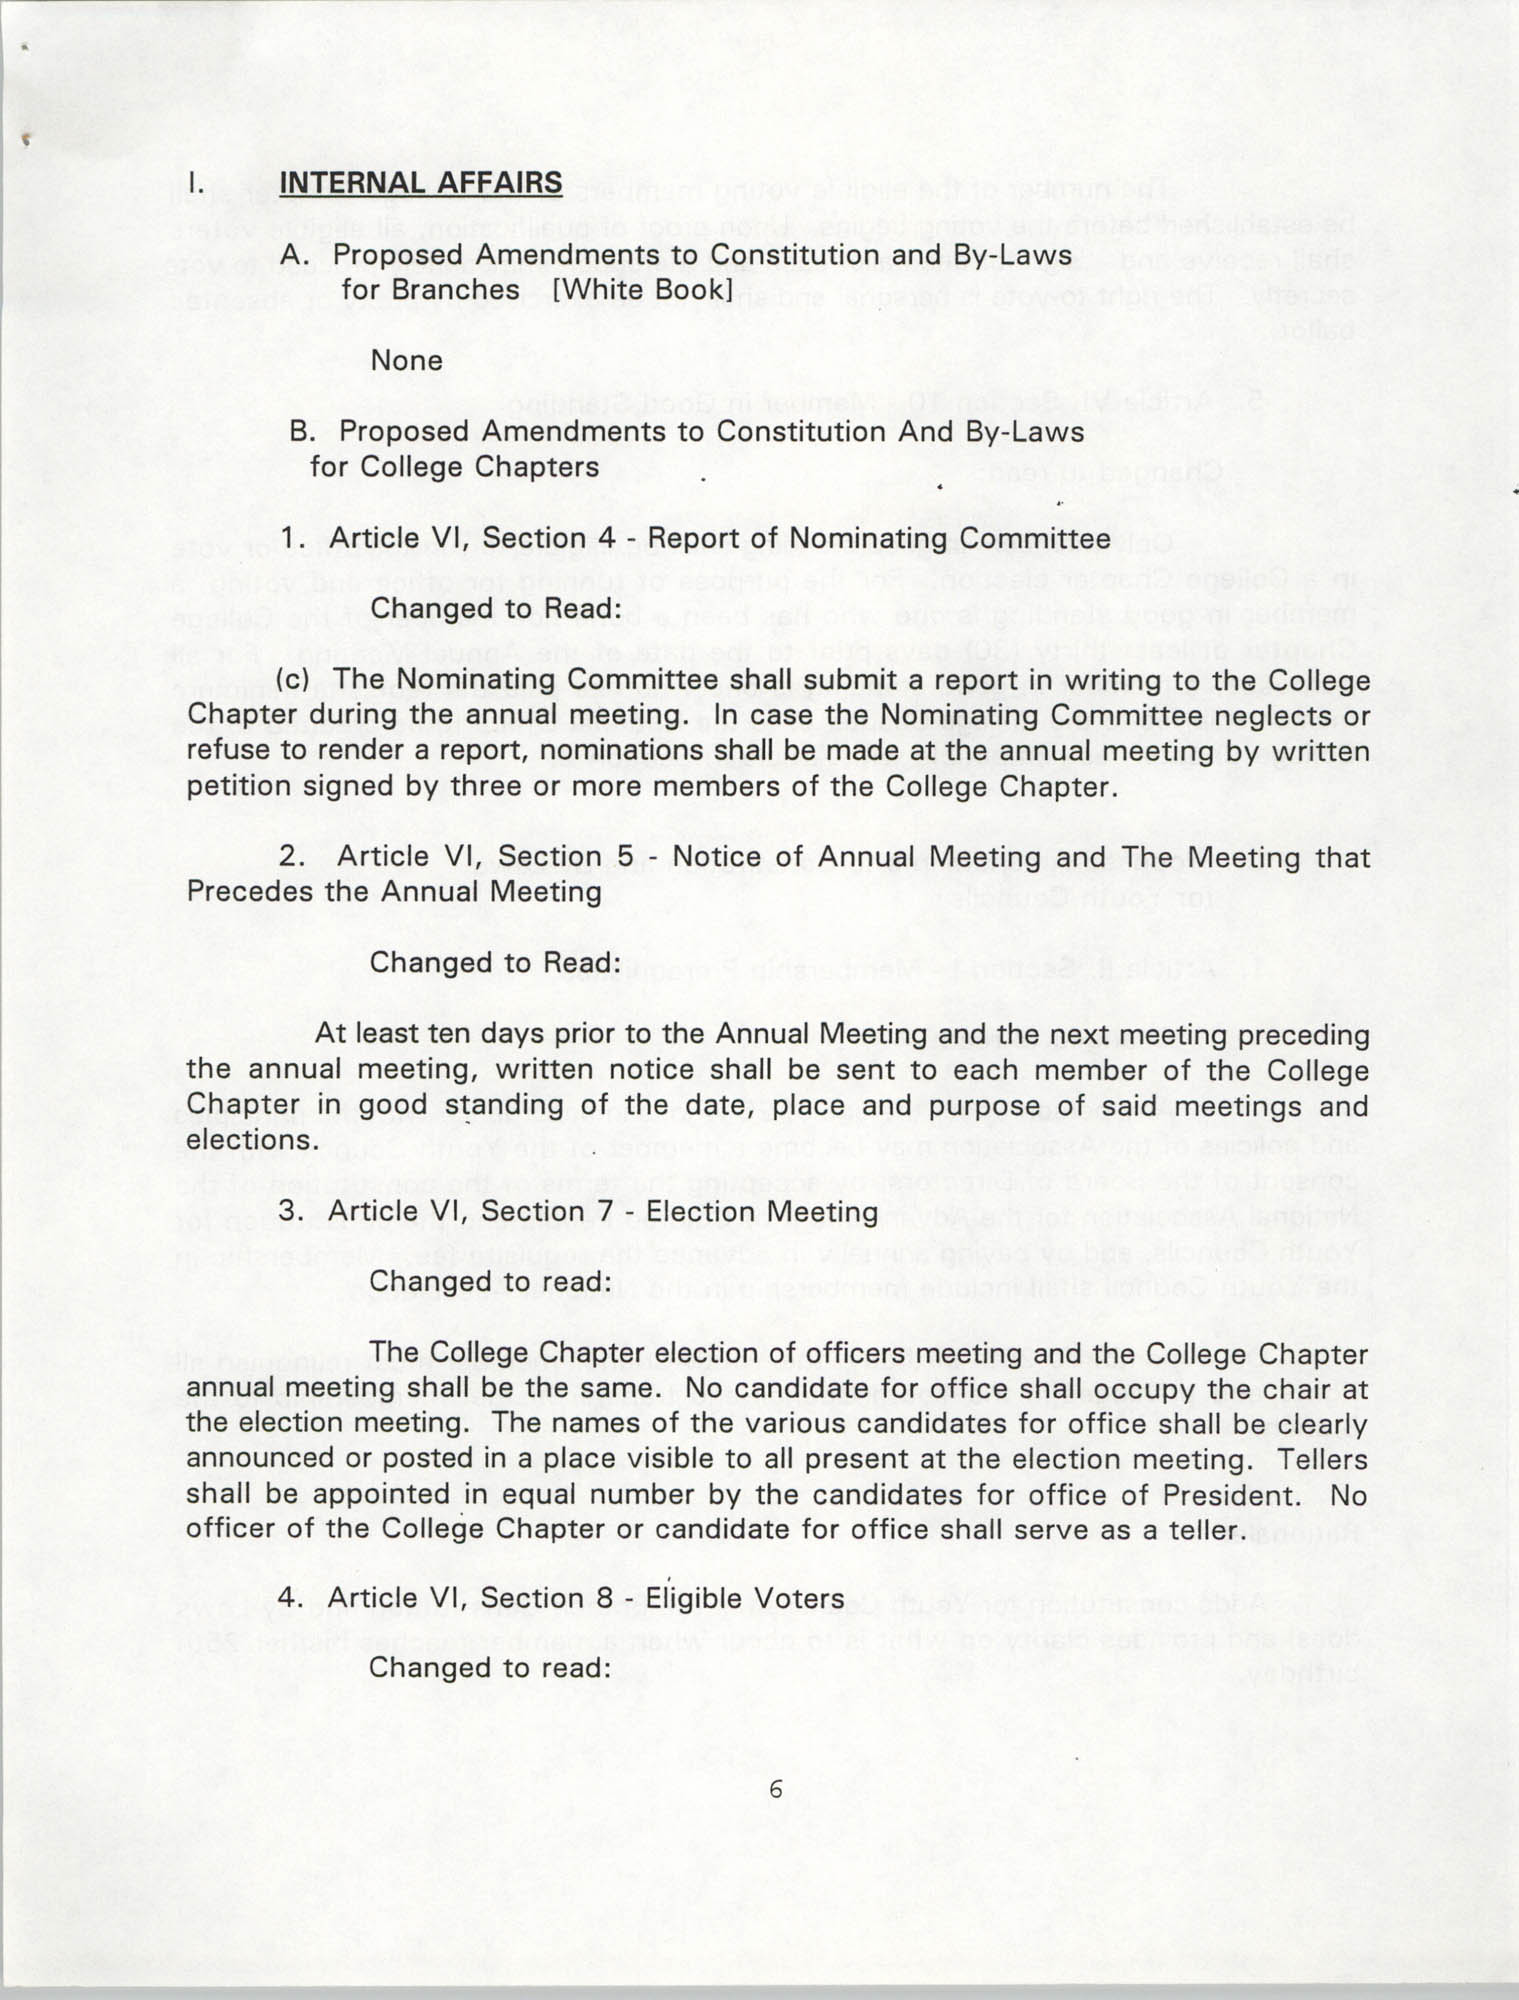 Resolutions Submitted Under Article X, Section 2 of the Constitution of the NAACP, 1994, Page 6